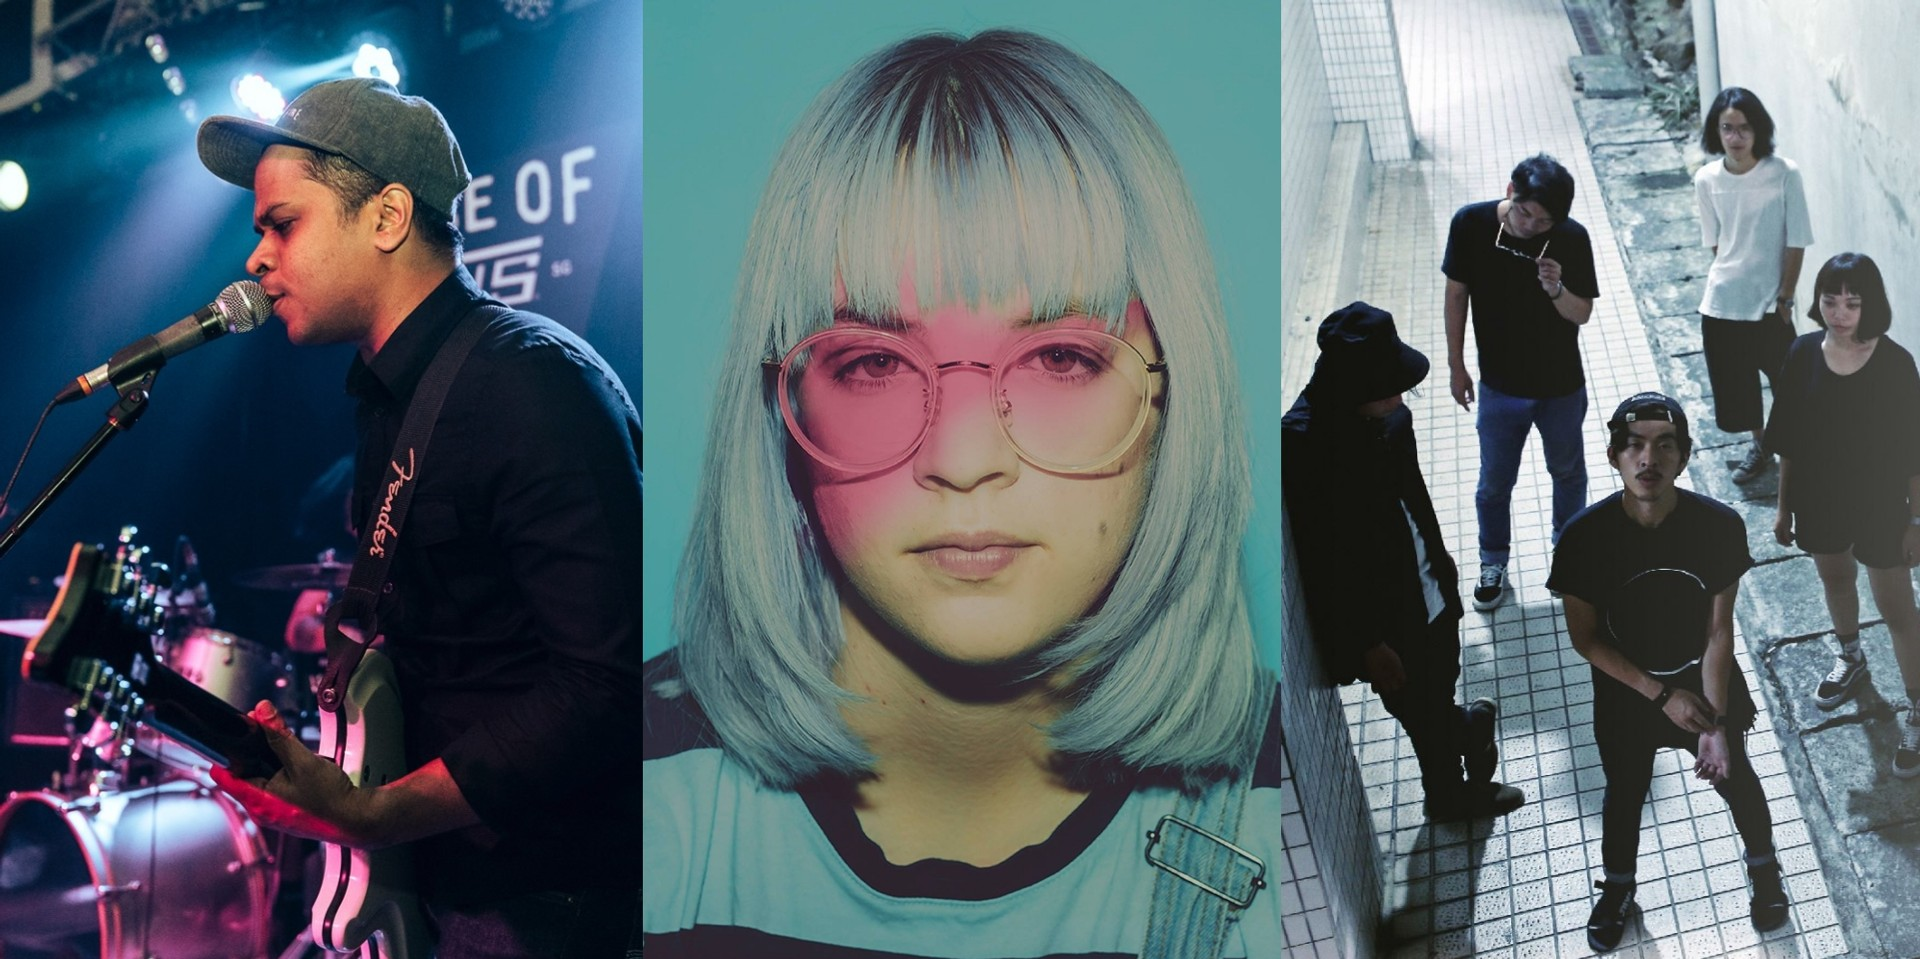 Get to know the Asia-Pacific artists playing Vans Musicians Wanted 2019